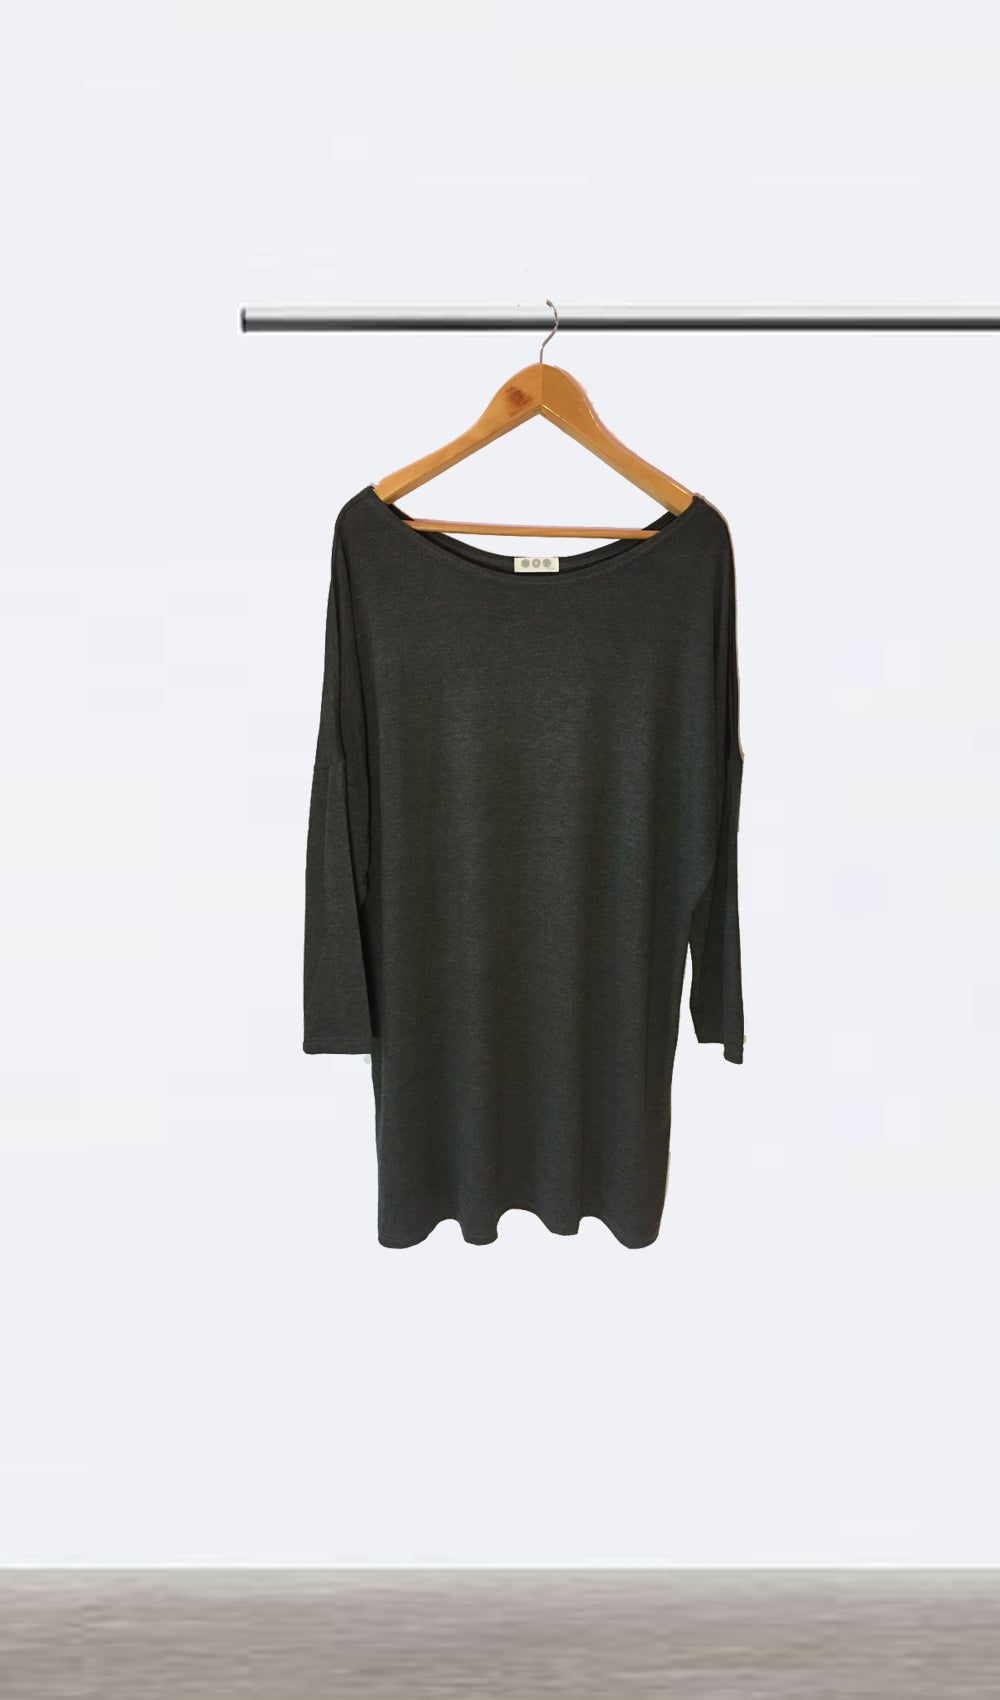 Ellipsis - The Charcoal Boatneck Dress